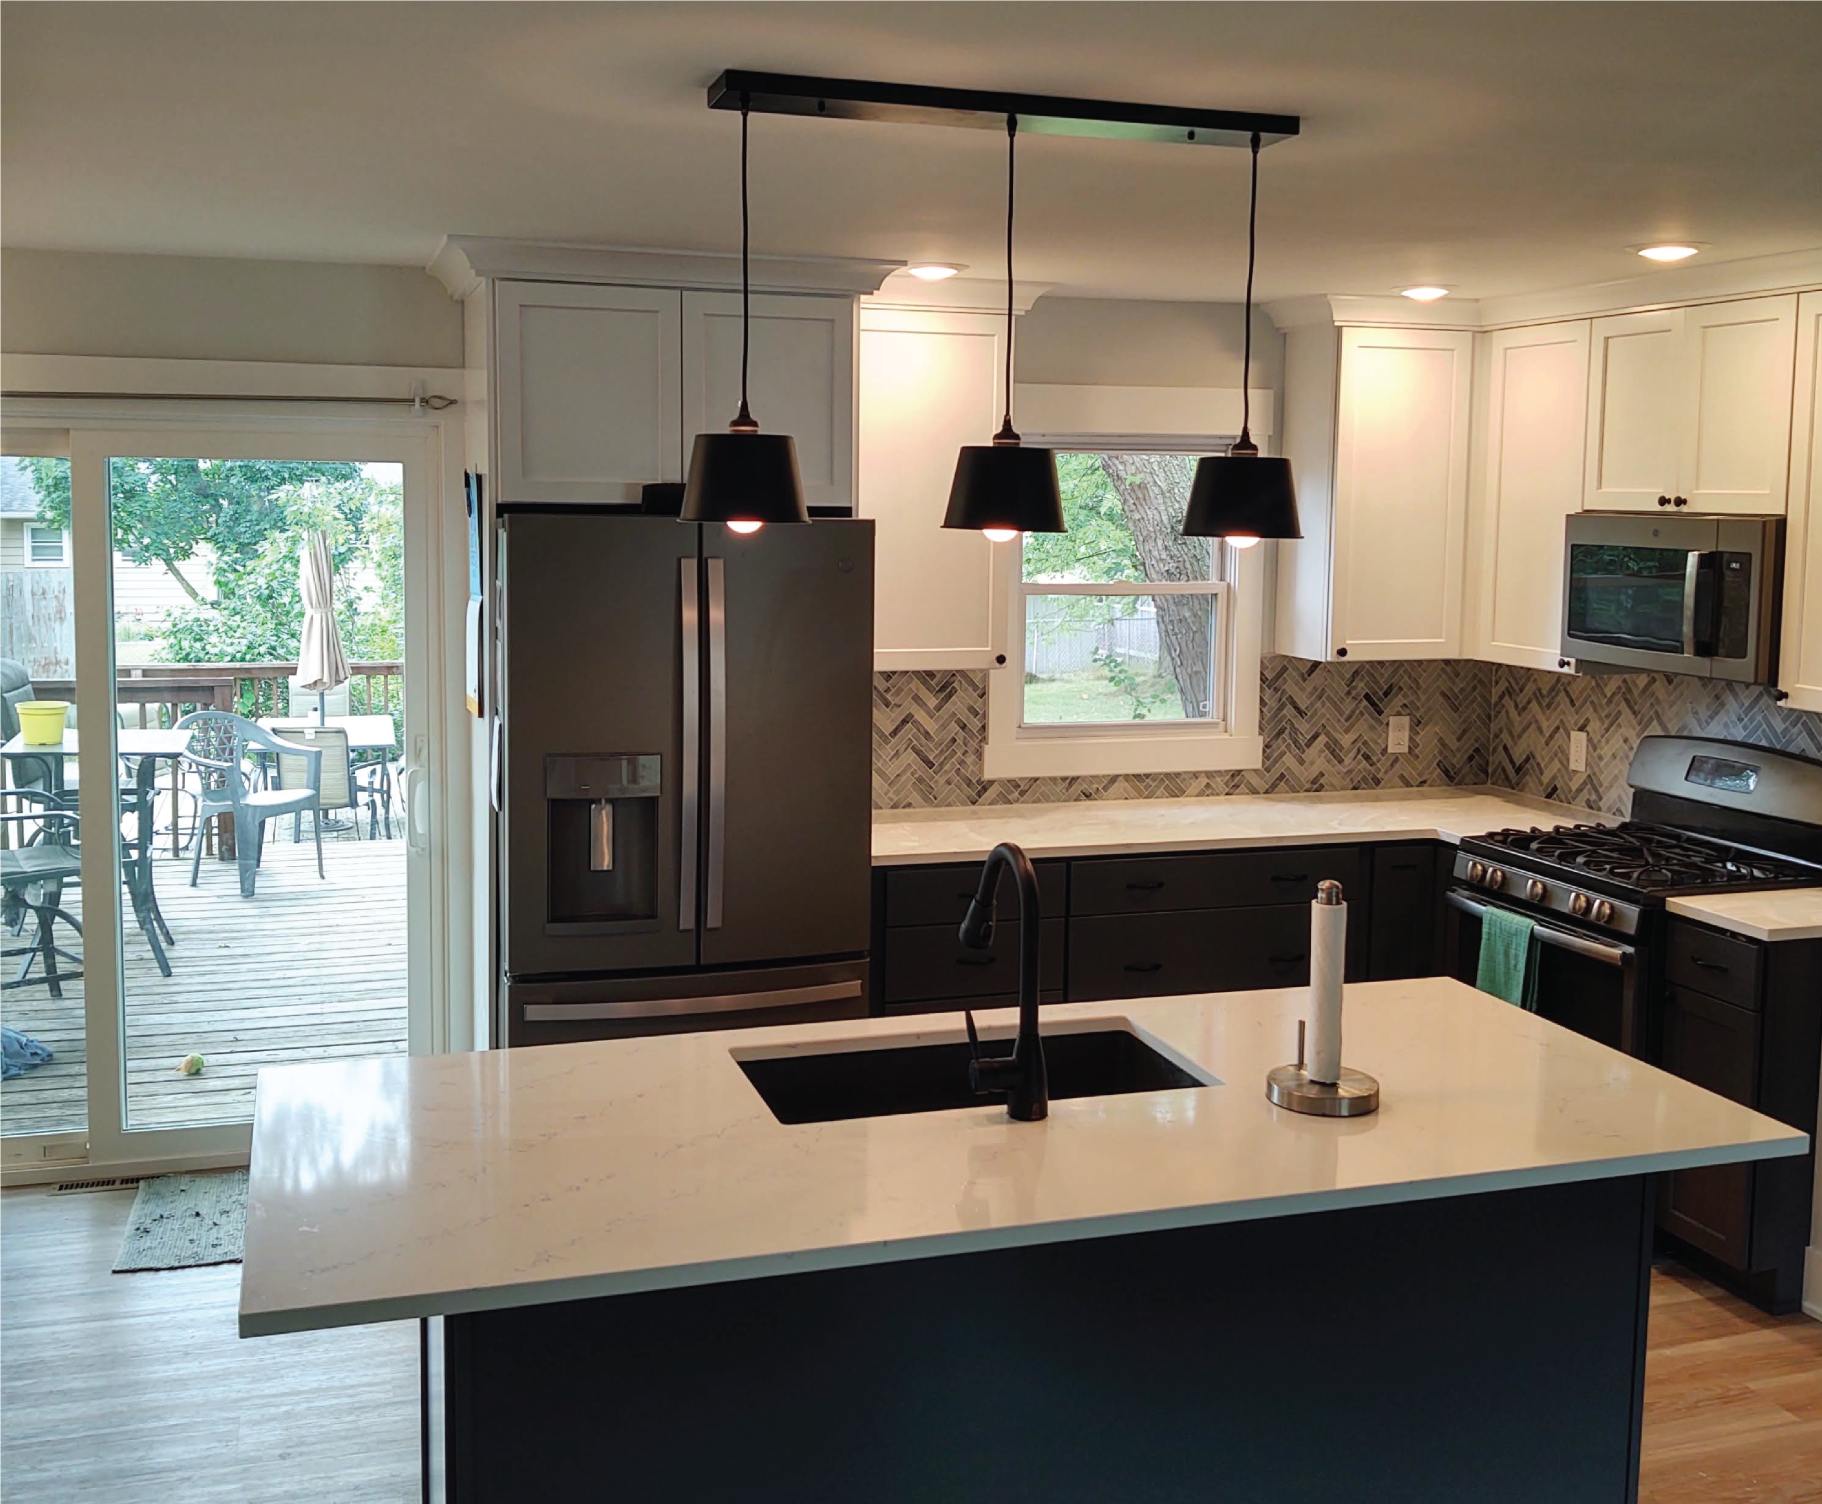 VADA Contracting after kitchen remodel 3 mile project